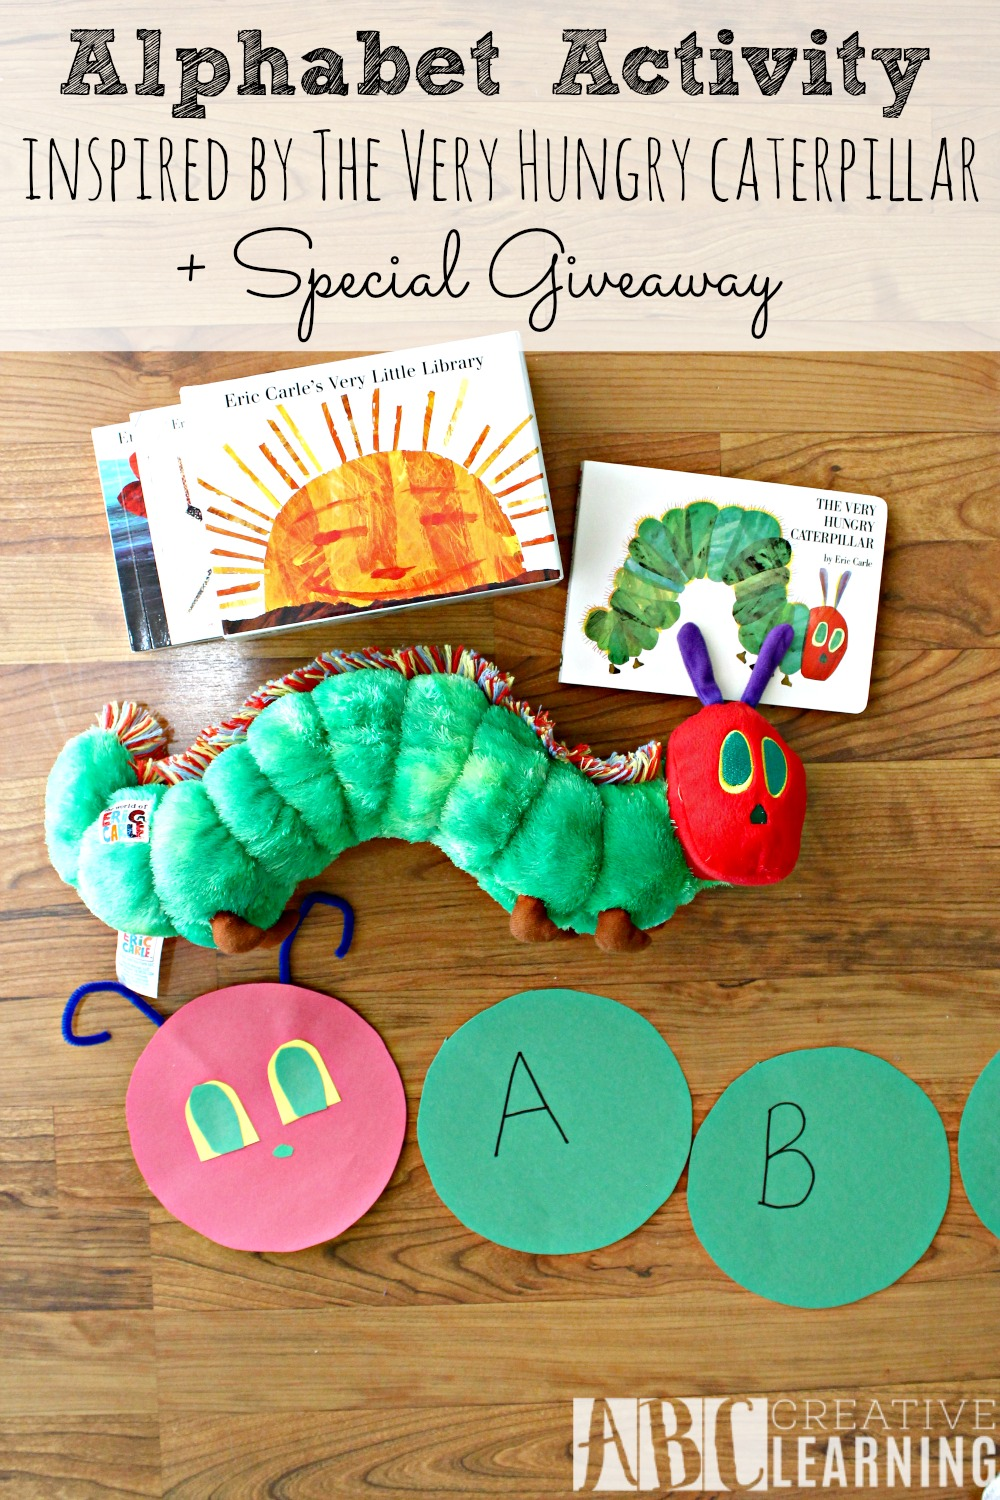 Alphabet Activity Inspired by The Very Hungry Caterpillar